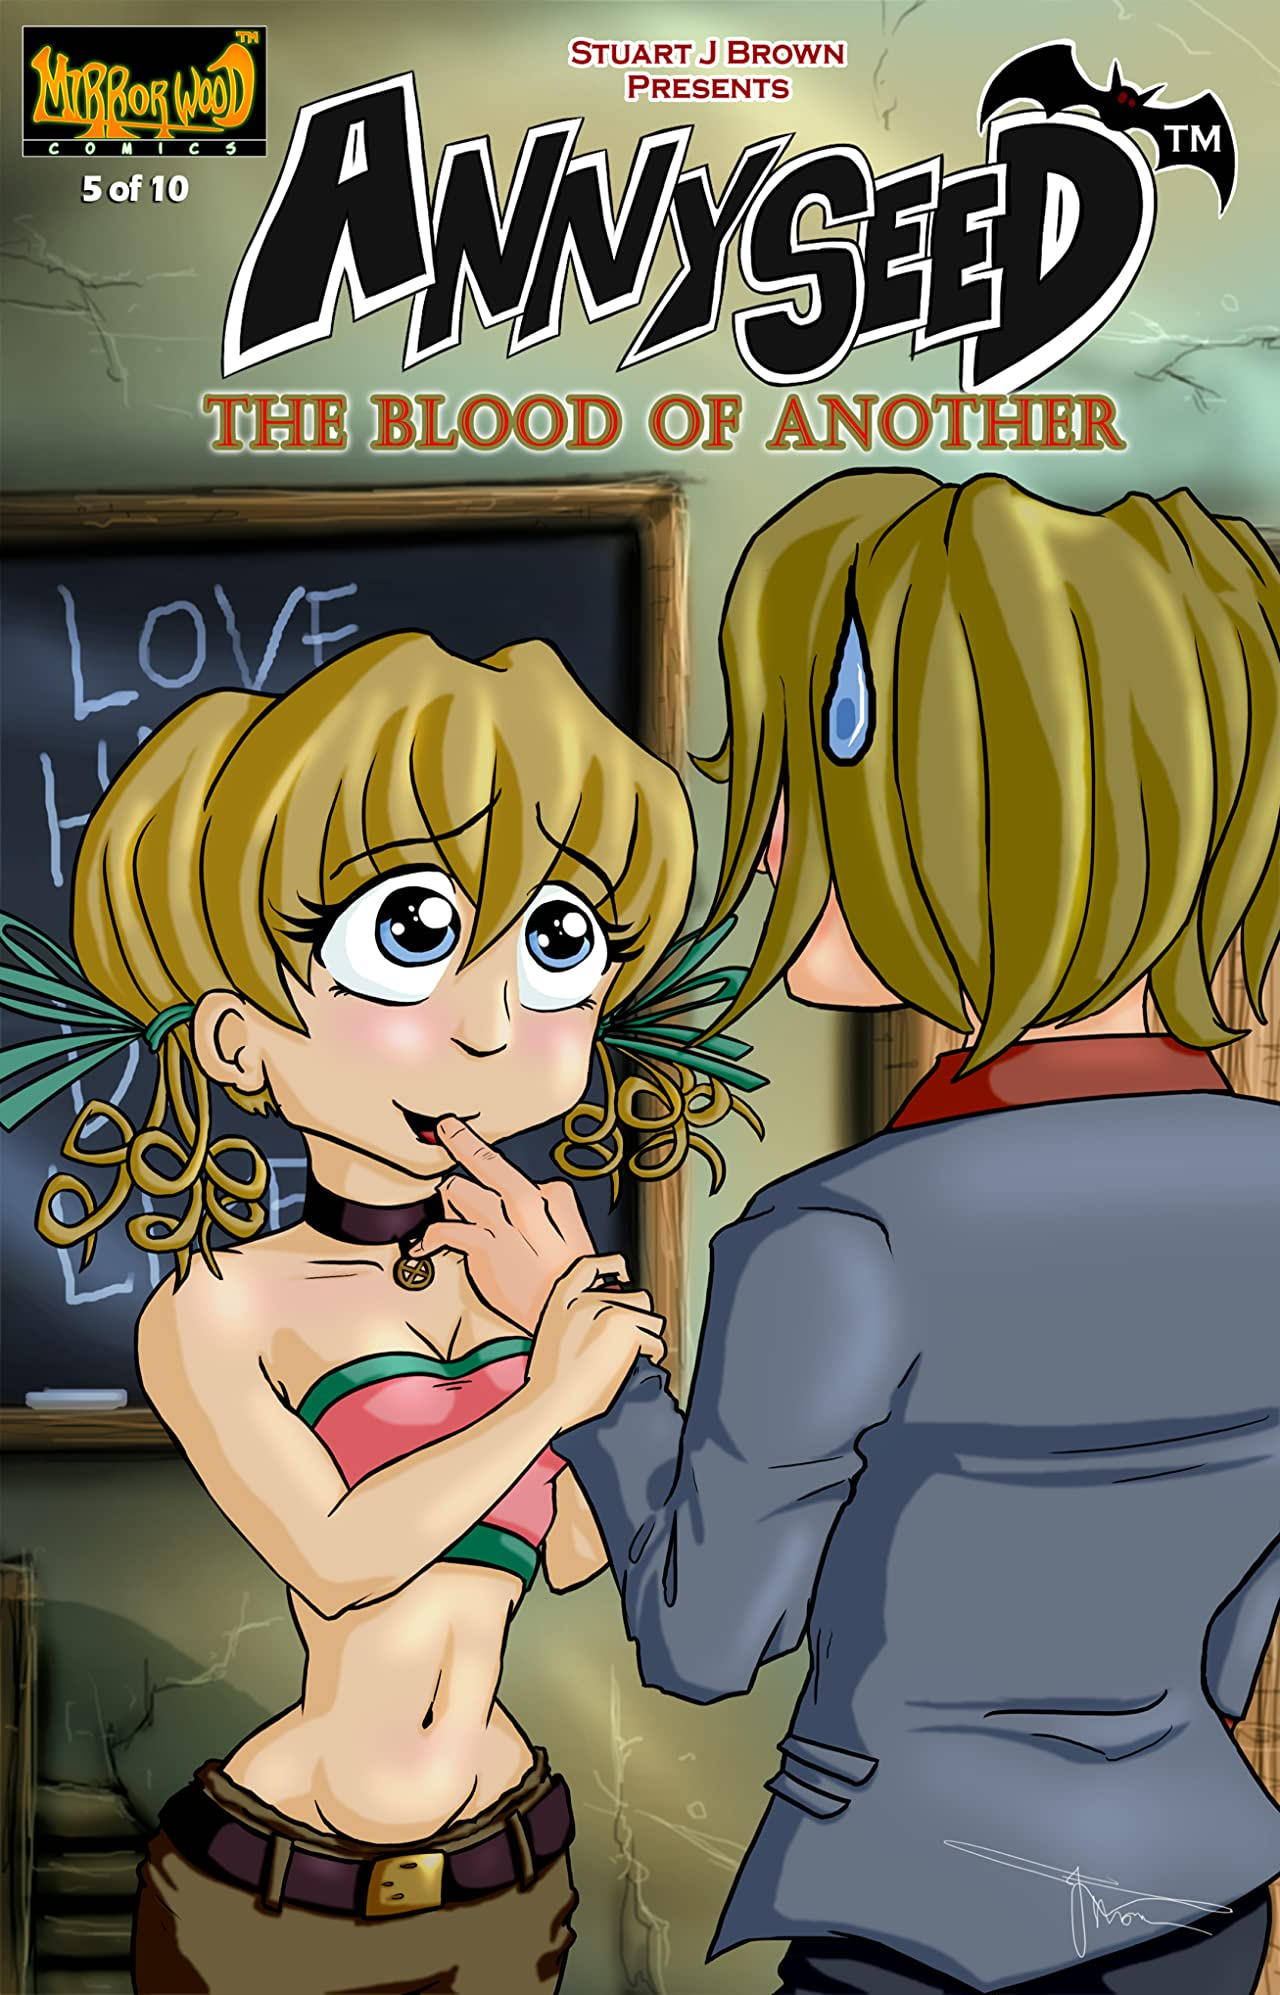 Annyseed - the Blood of Another #5